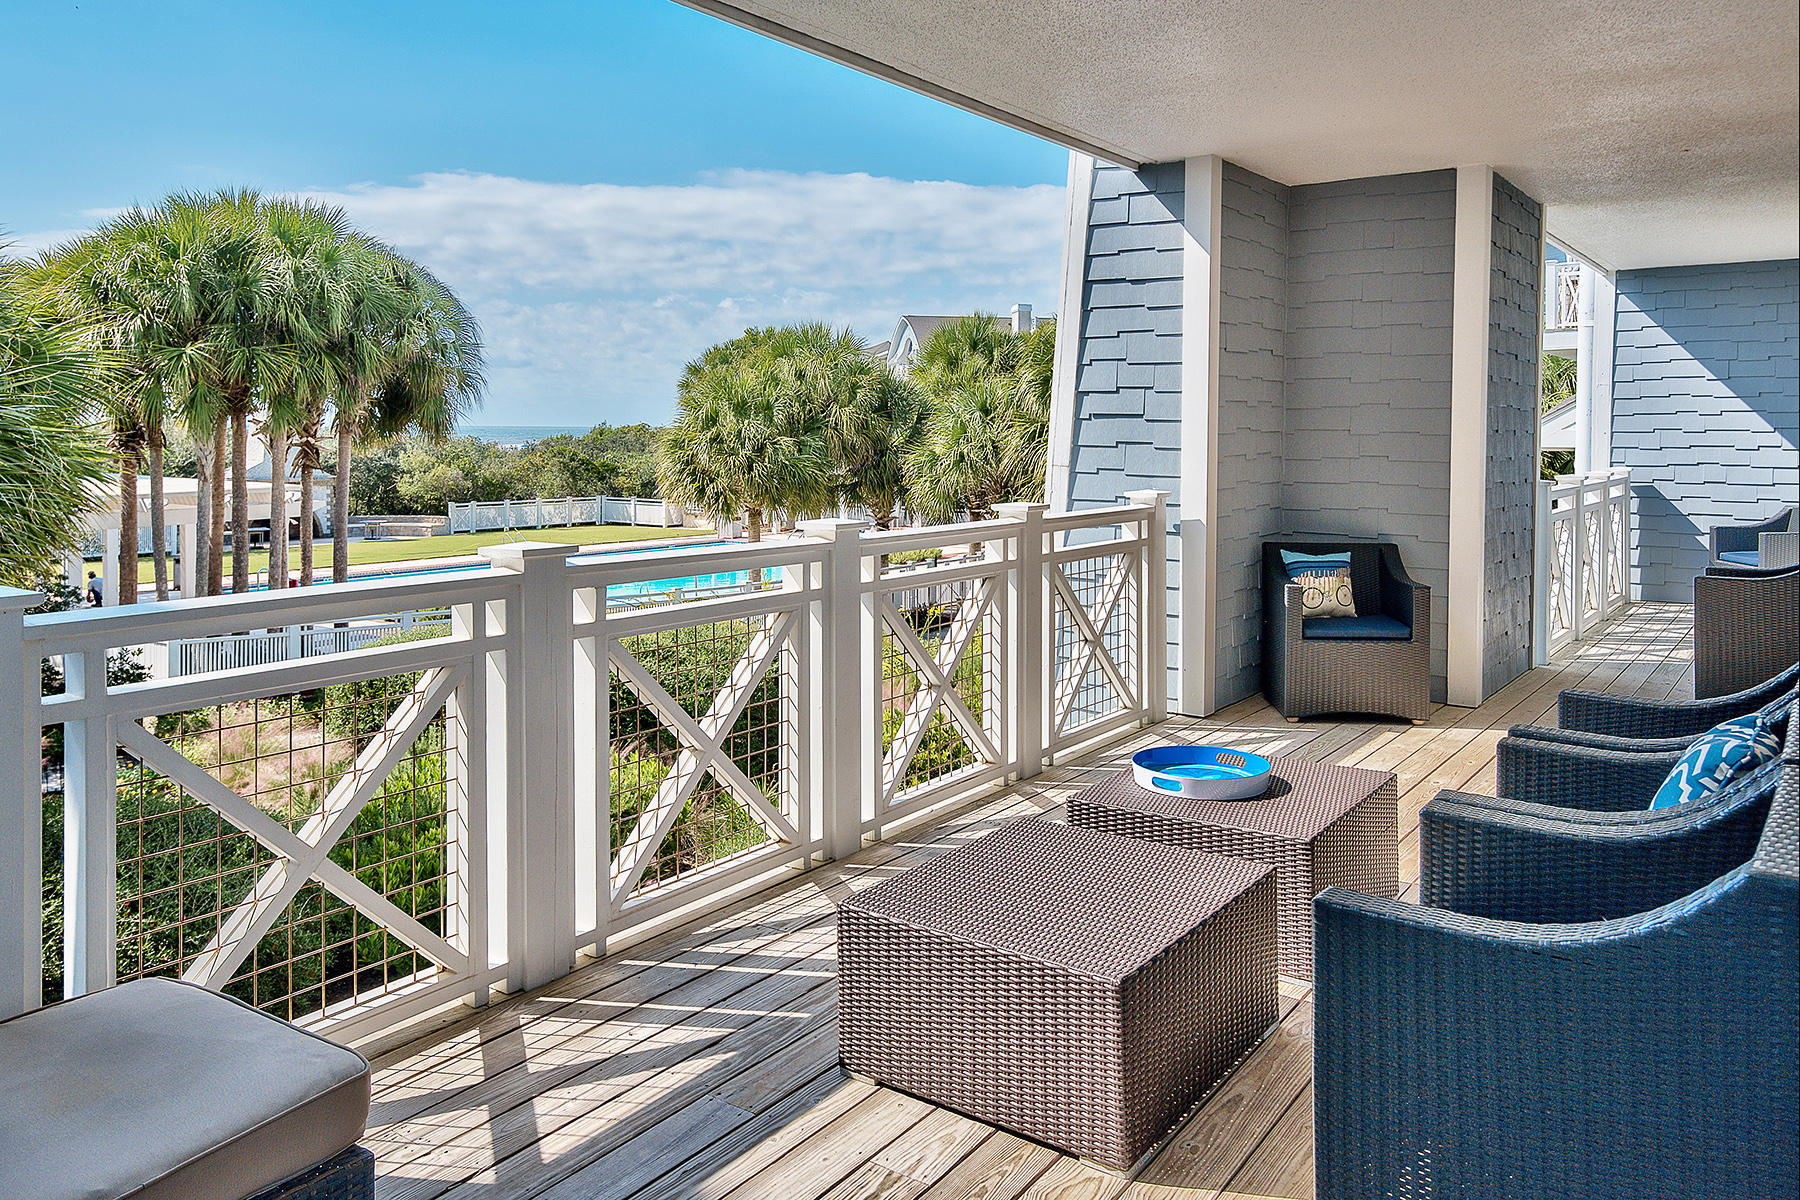 Other Residential for Sale at QUINTESSENTIAL COASTAL CHIC BEACHFRONT RESIDENCE 337 Bridge Lane S UNIT 101B Watersound, Florida 32413 United States